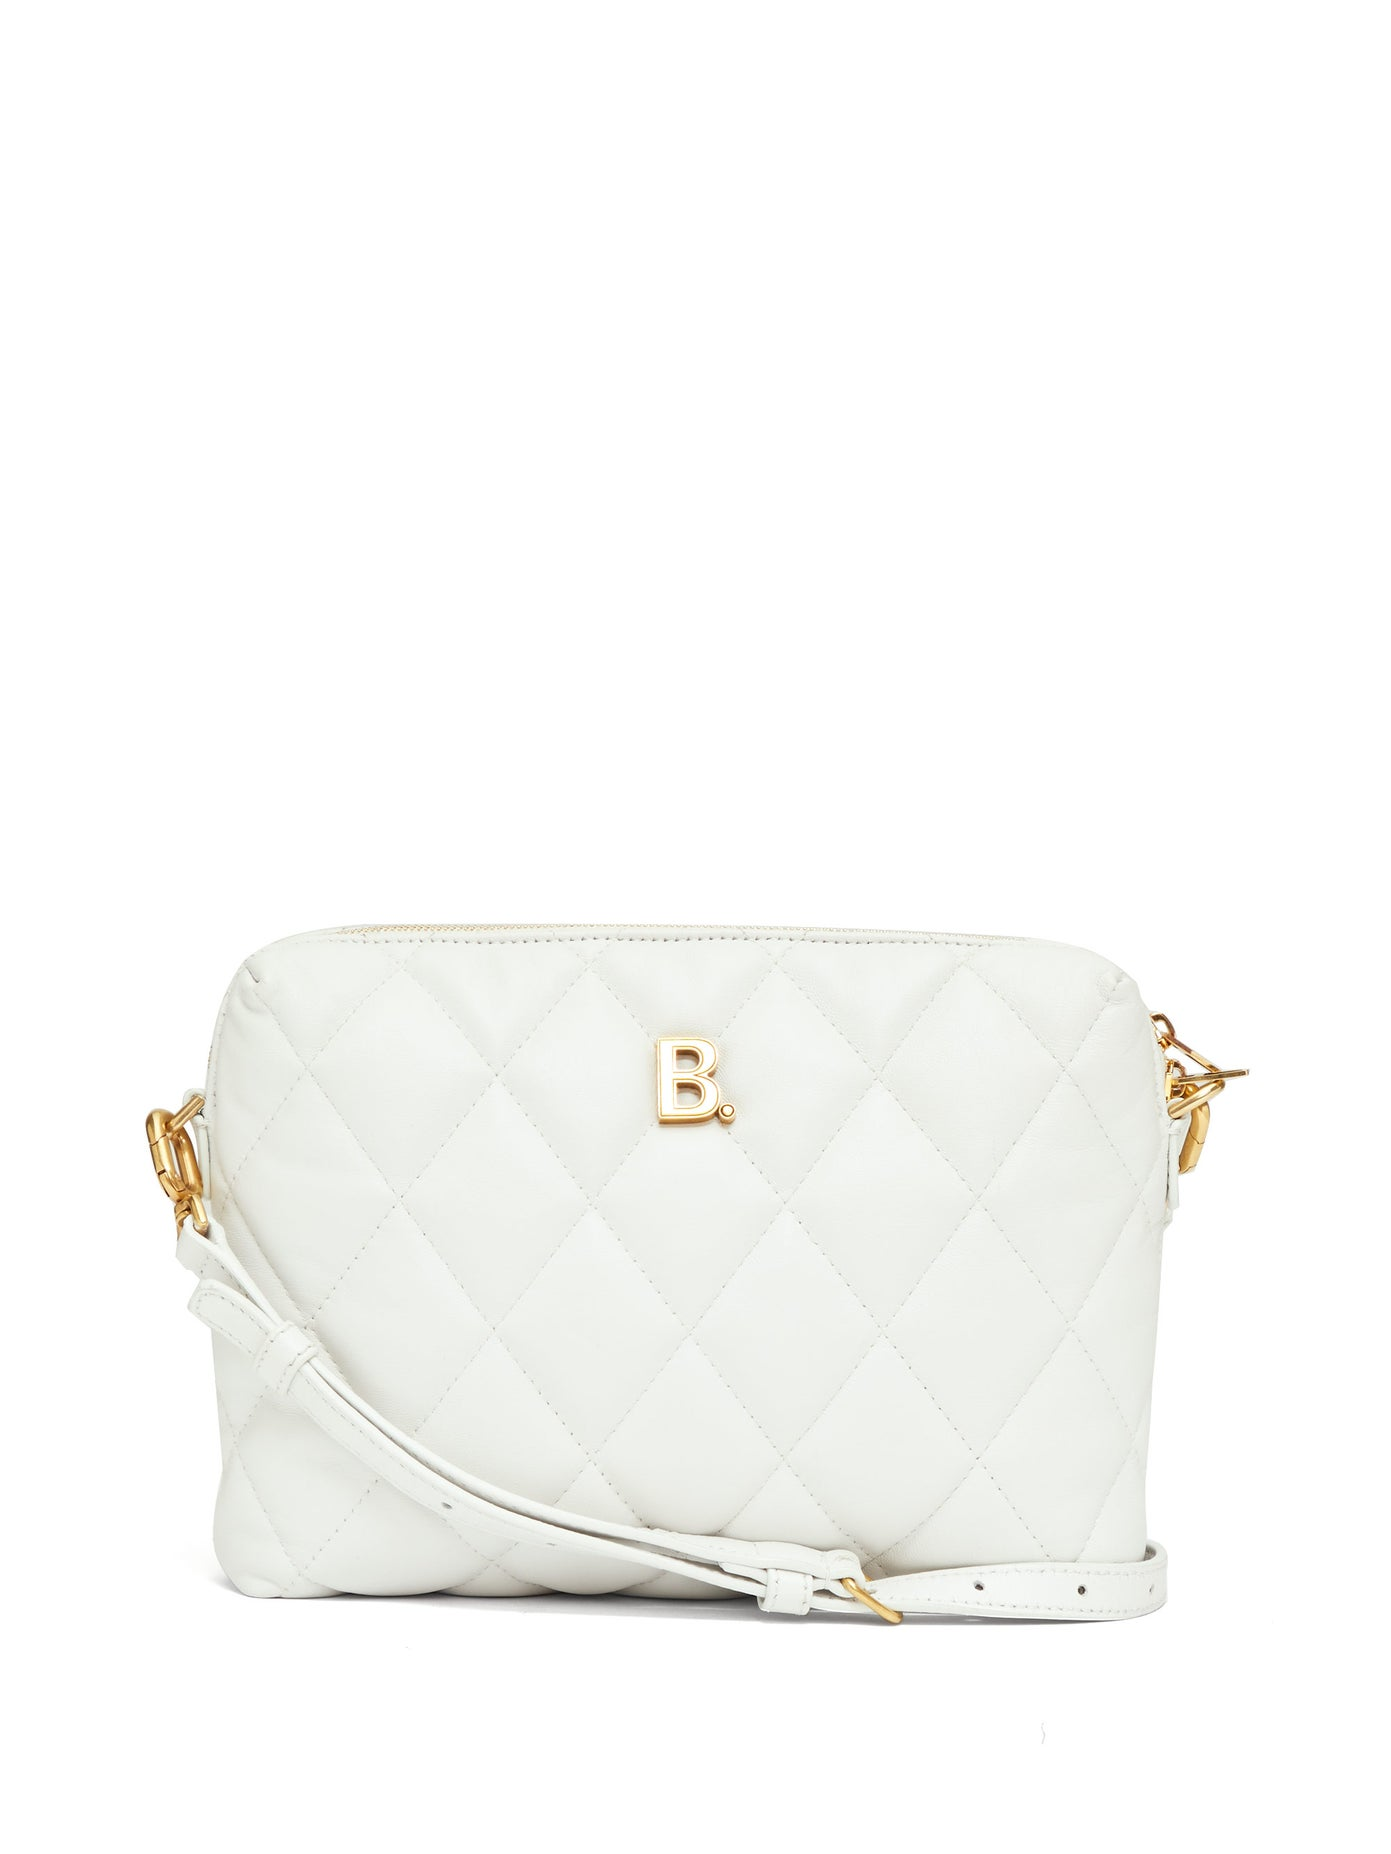 Balenciaga-Touch-small-B-logo-quilted-leather-cross-body-bag-white